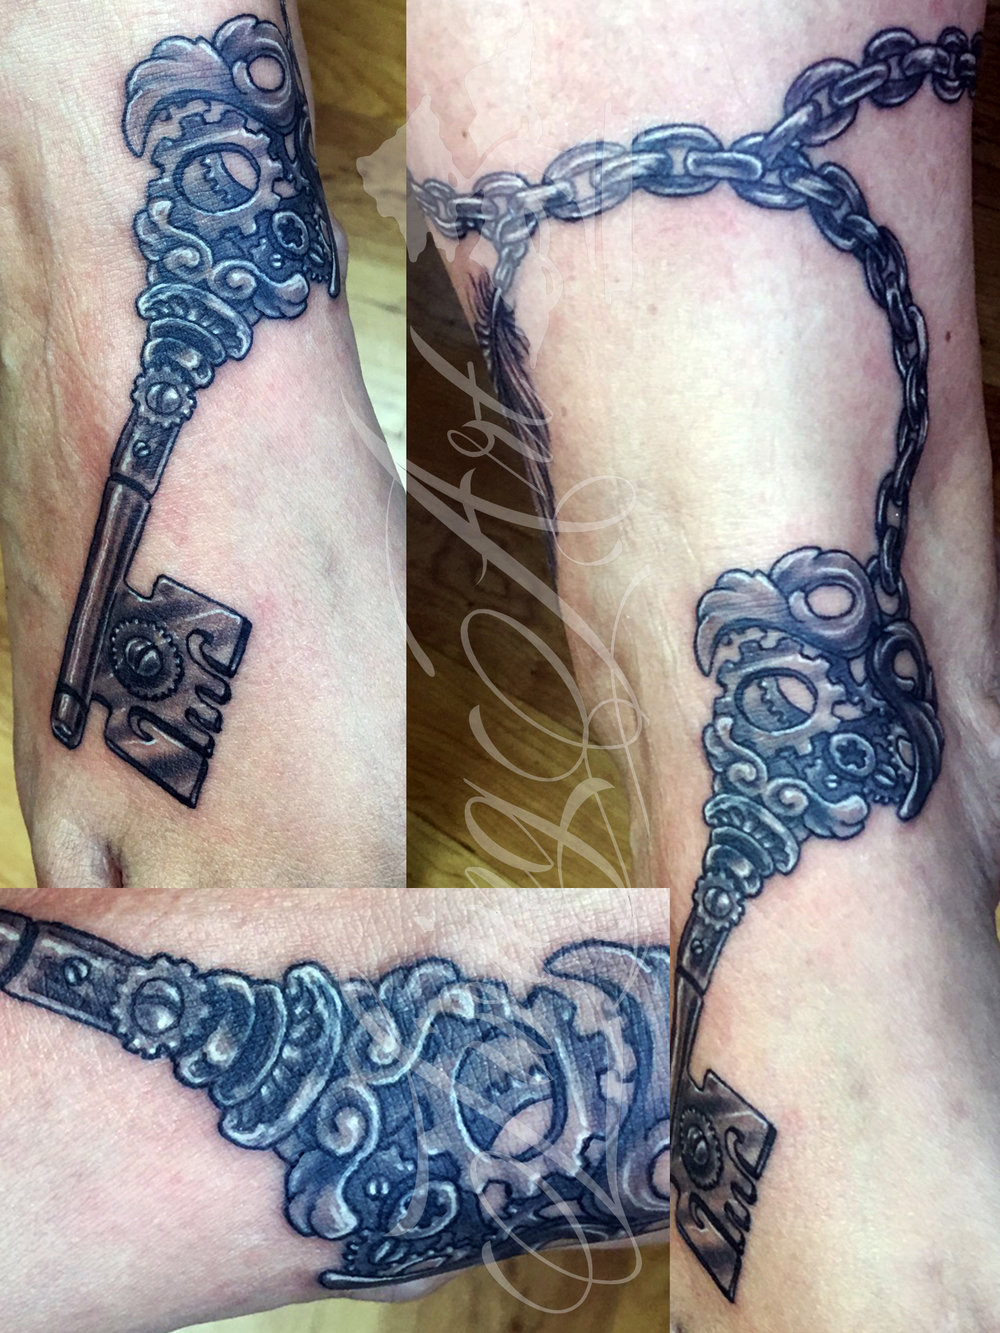 chris owen tattoo_chain and key tattoo.jpg